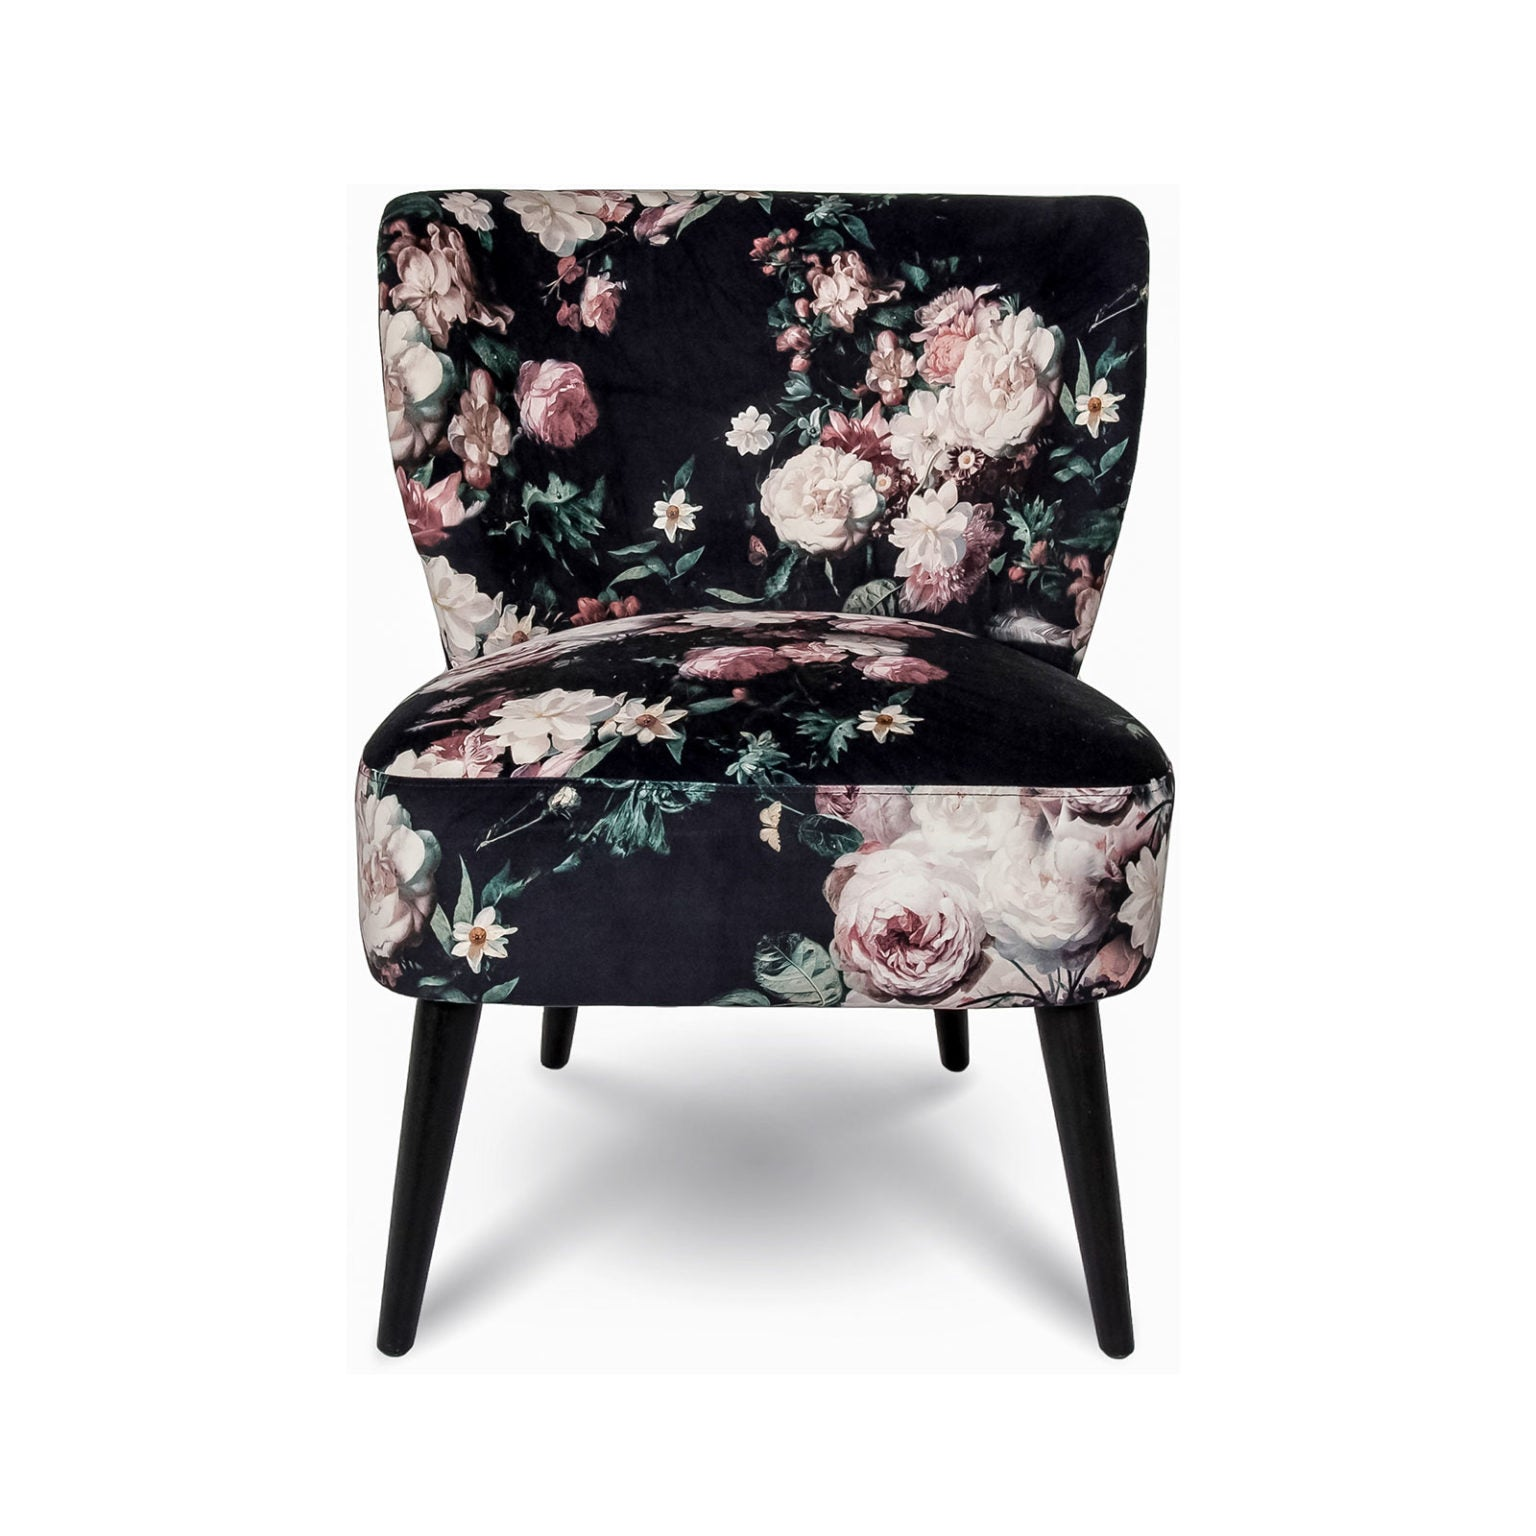 Mary Chair - Floral